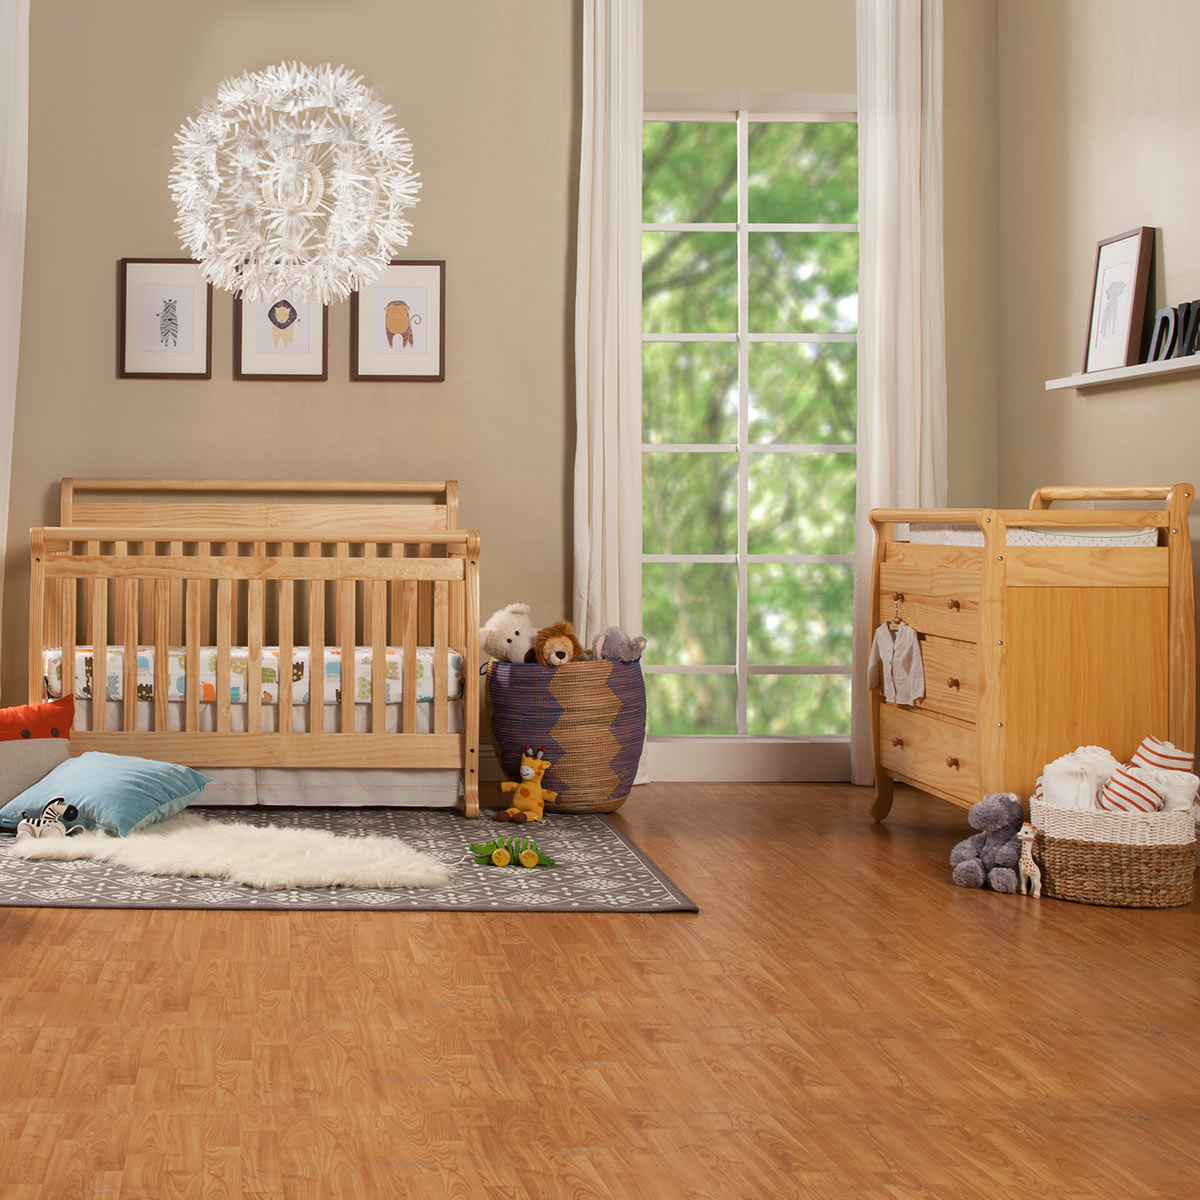 Da Vinci 2 Piece Nursery Set In Natural